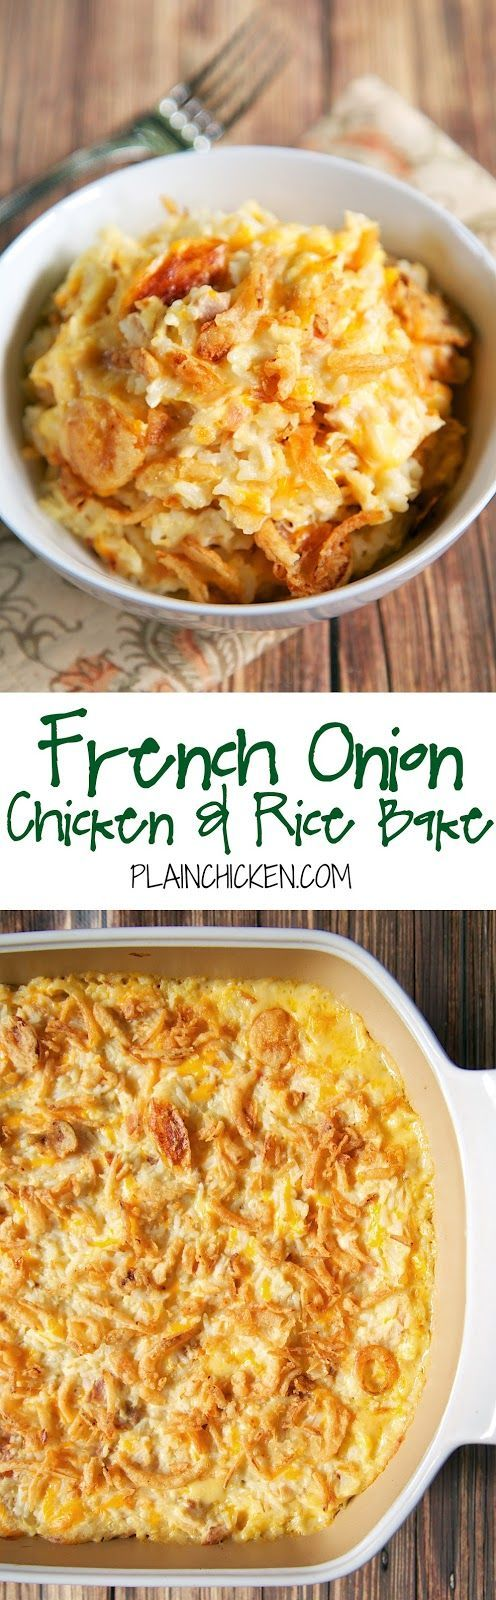 Quick Dinner Ideas - French Onion Chicken and Rice Bake Family Dinner Casserole Recipe via Plain Chicken